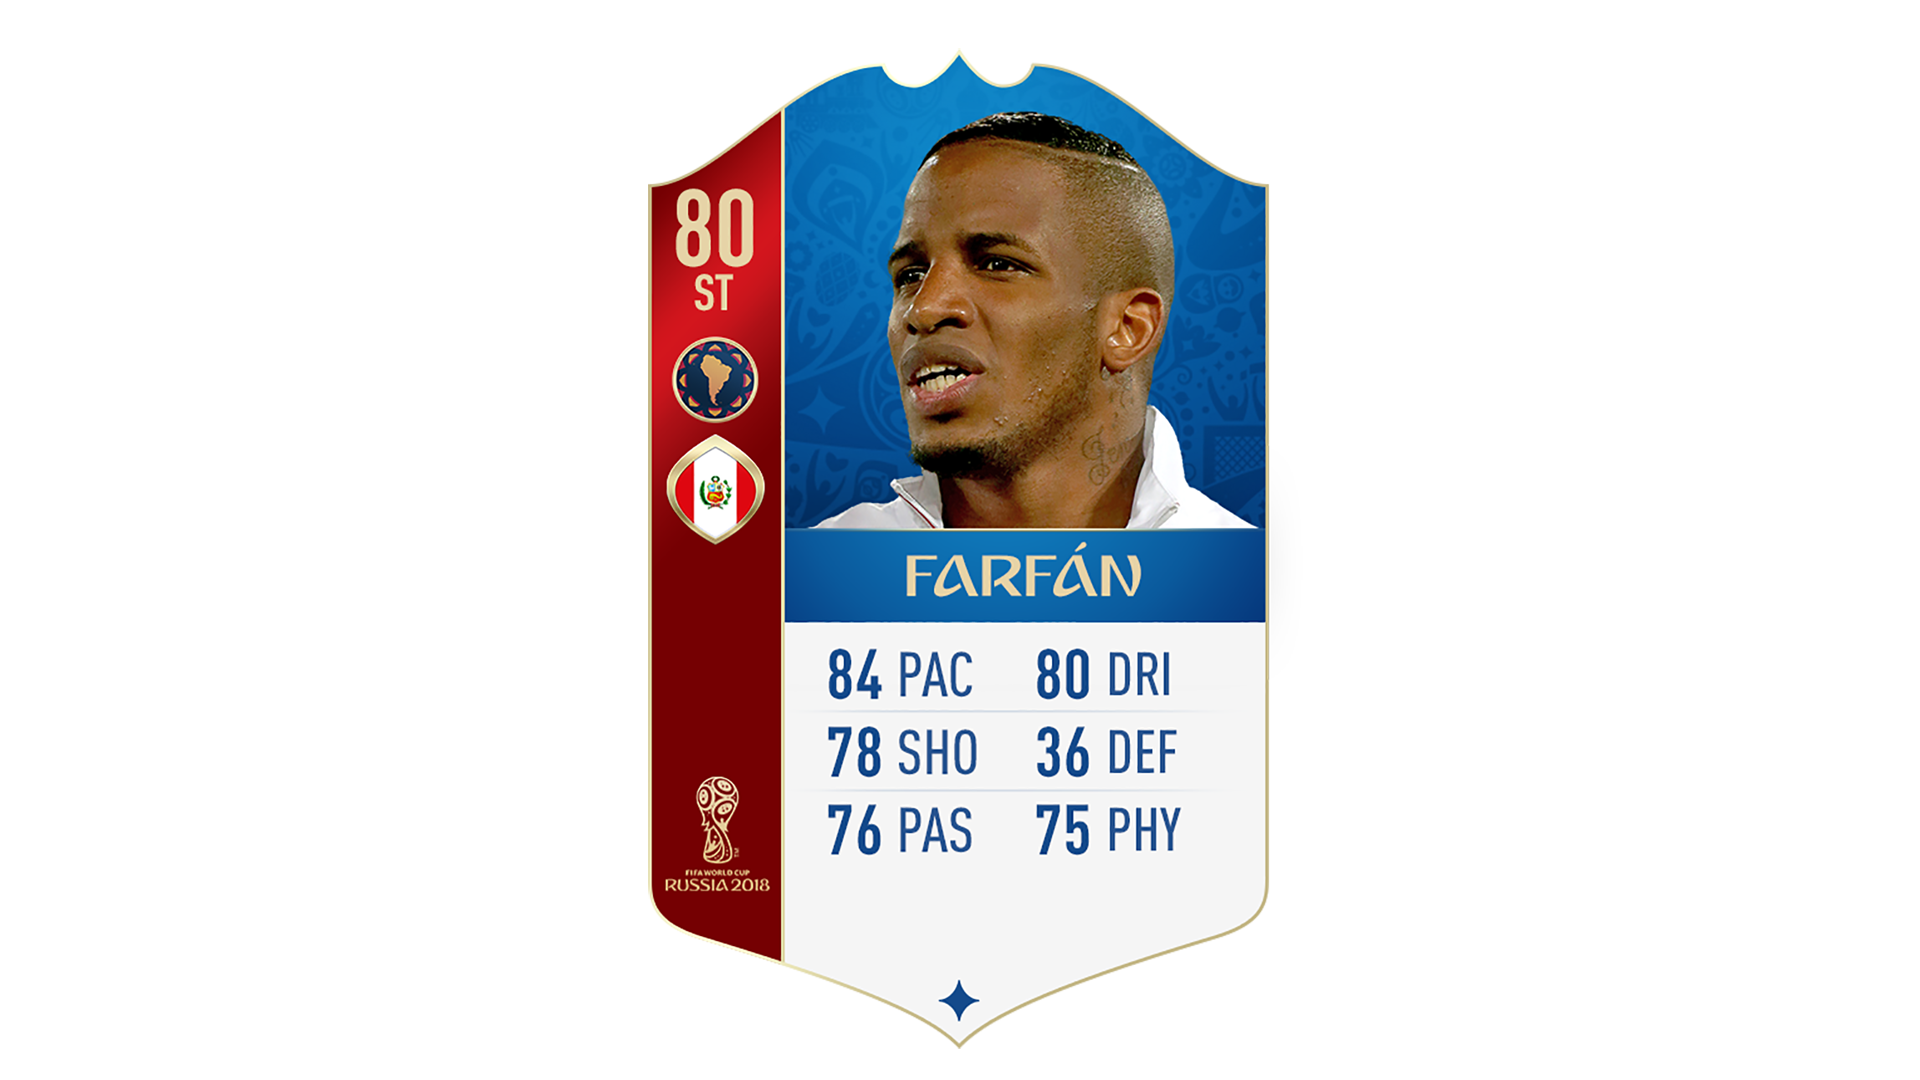 FIFA 18 World Cup CONMEBOL Ratings Farfan